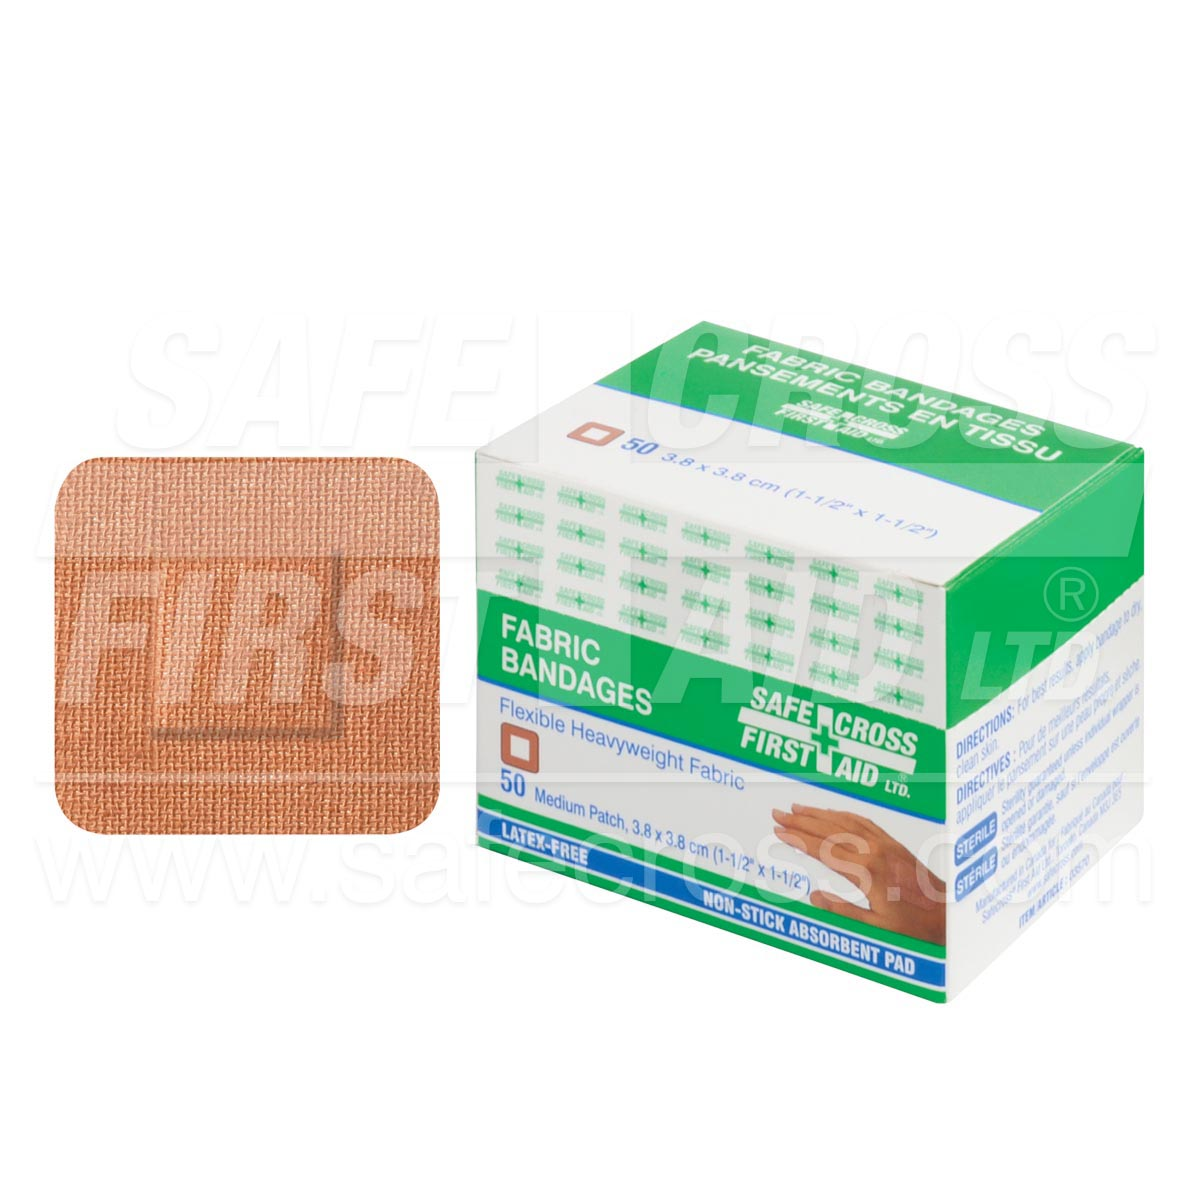 Fabric Bandages Sterile